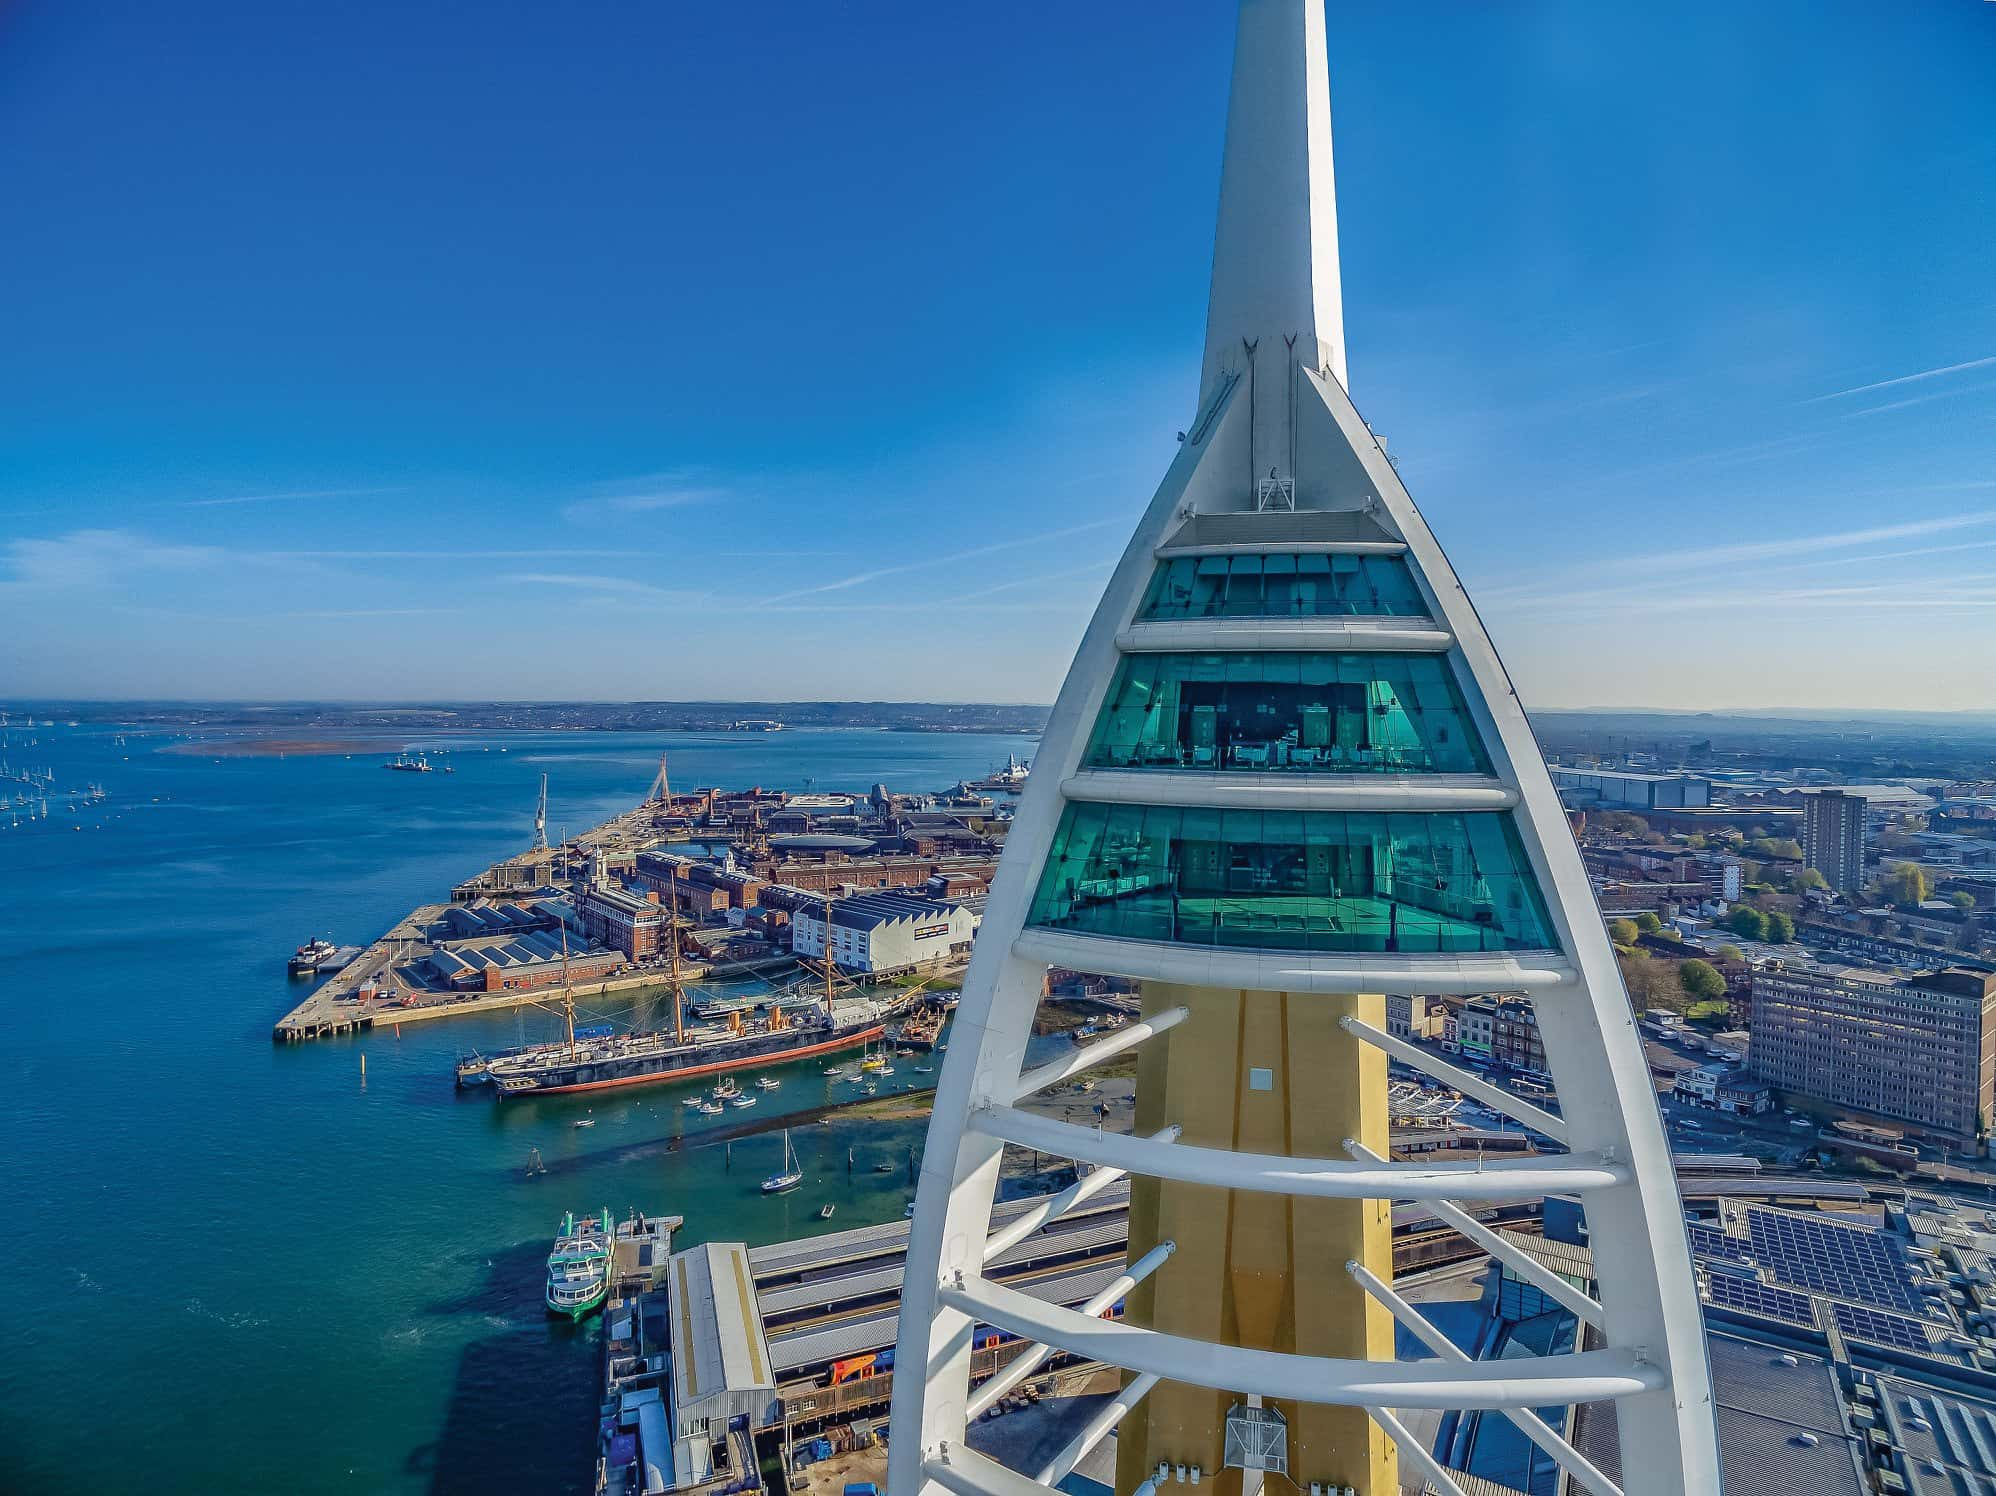 Spinnaker tower in Portsmouth.